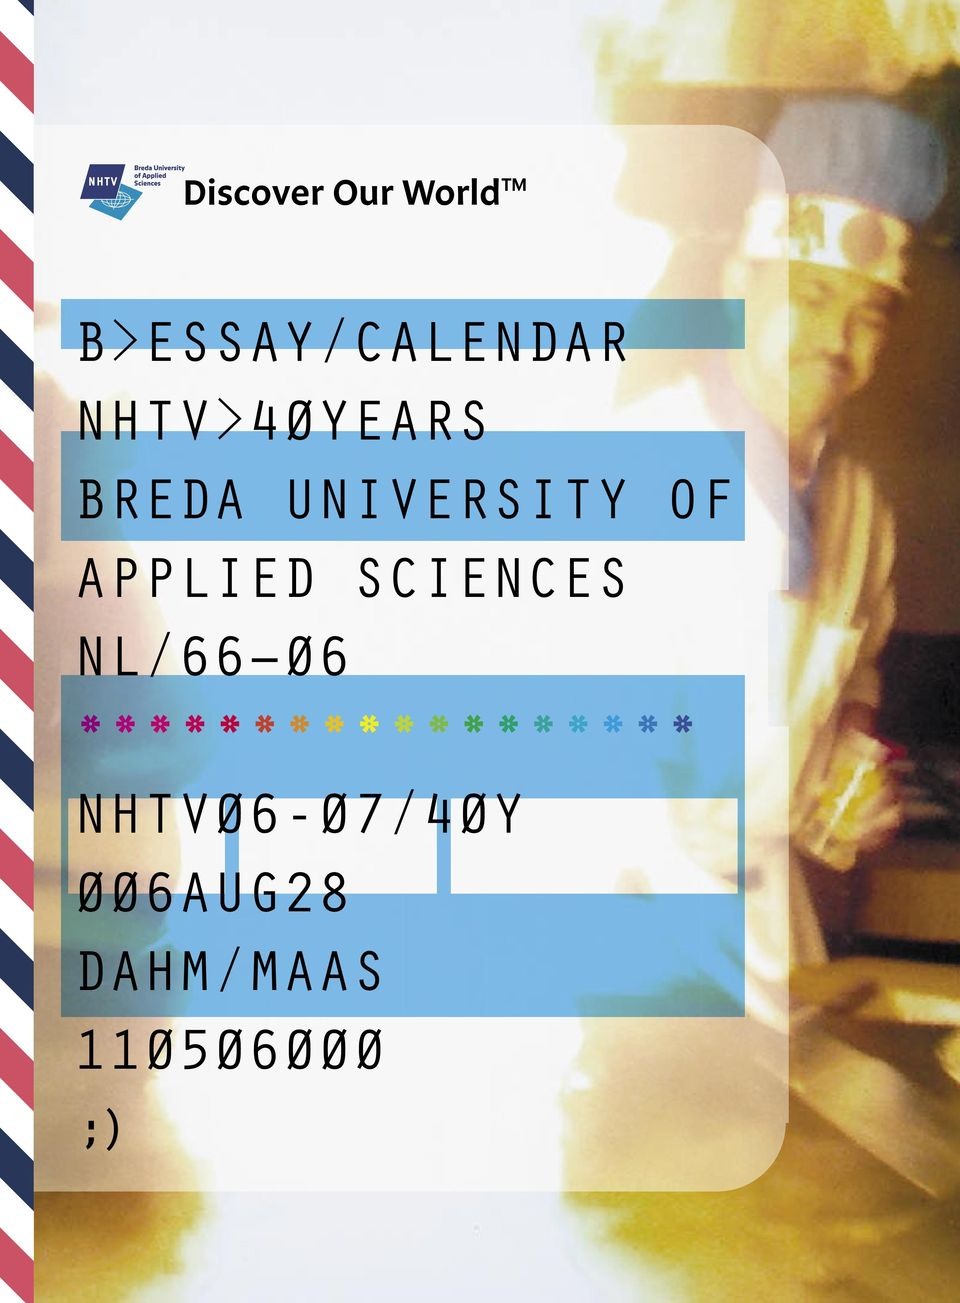 BREDA UNIVERSITY OF APPLIED